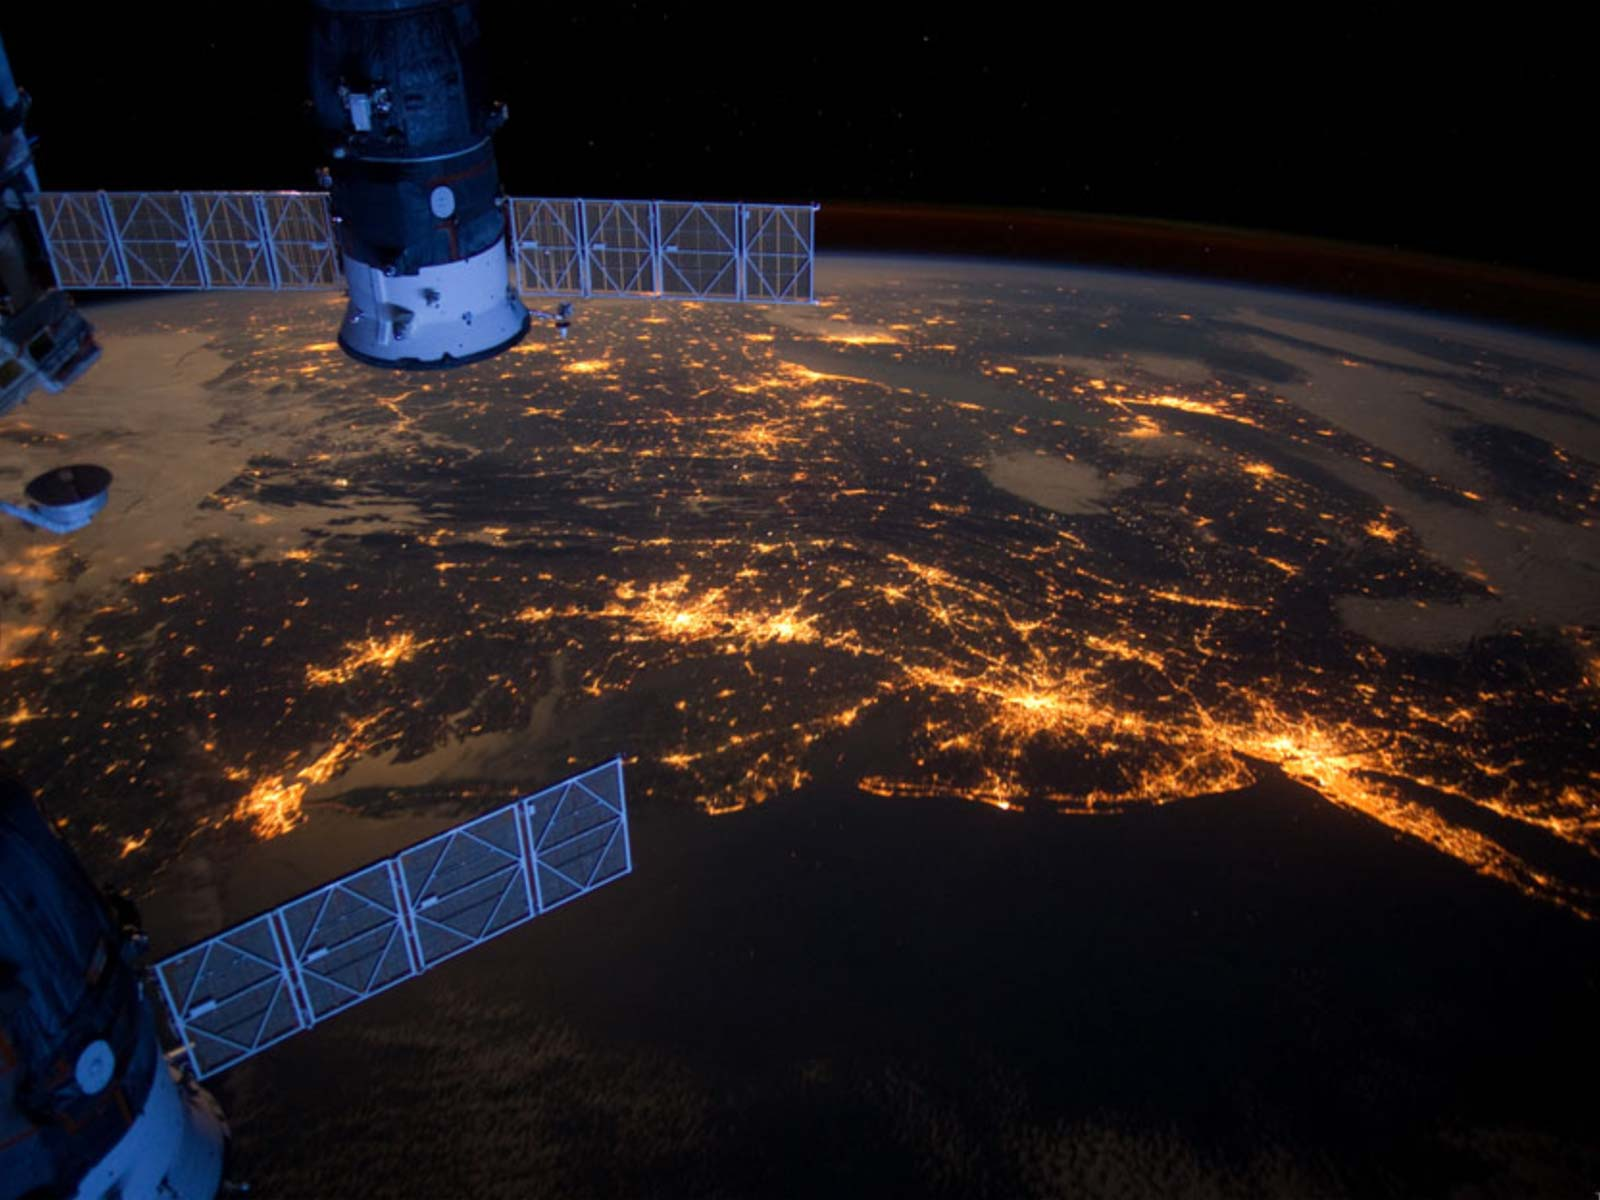 Nighttime Lights in a US Megalopolis | Space Wallpaper